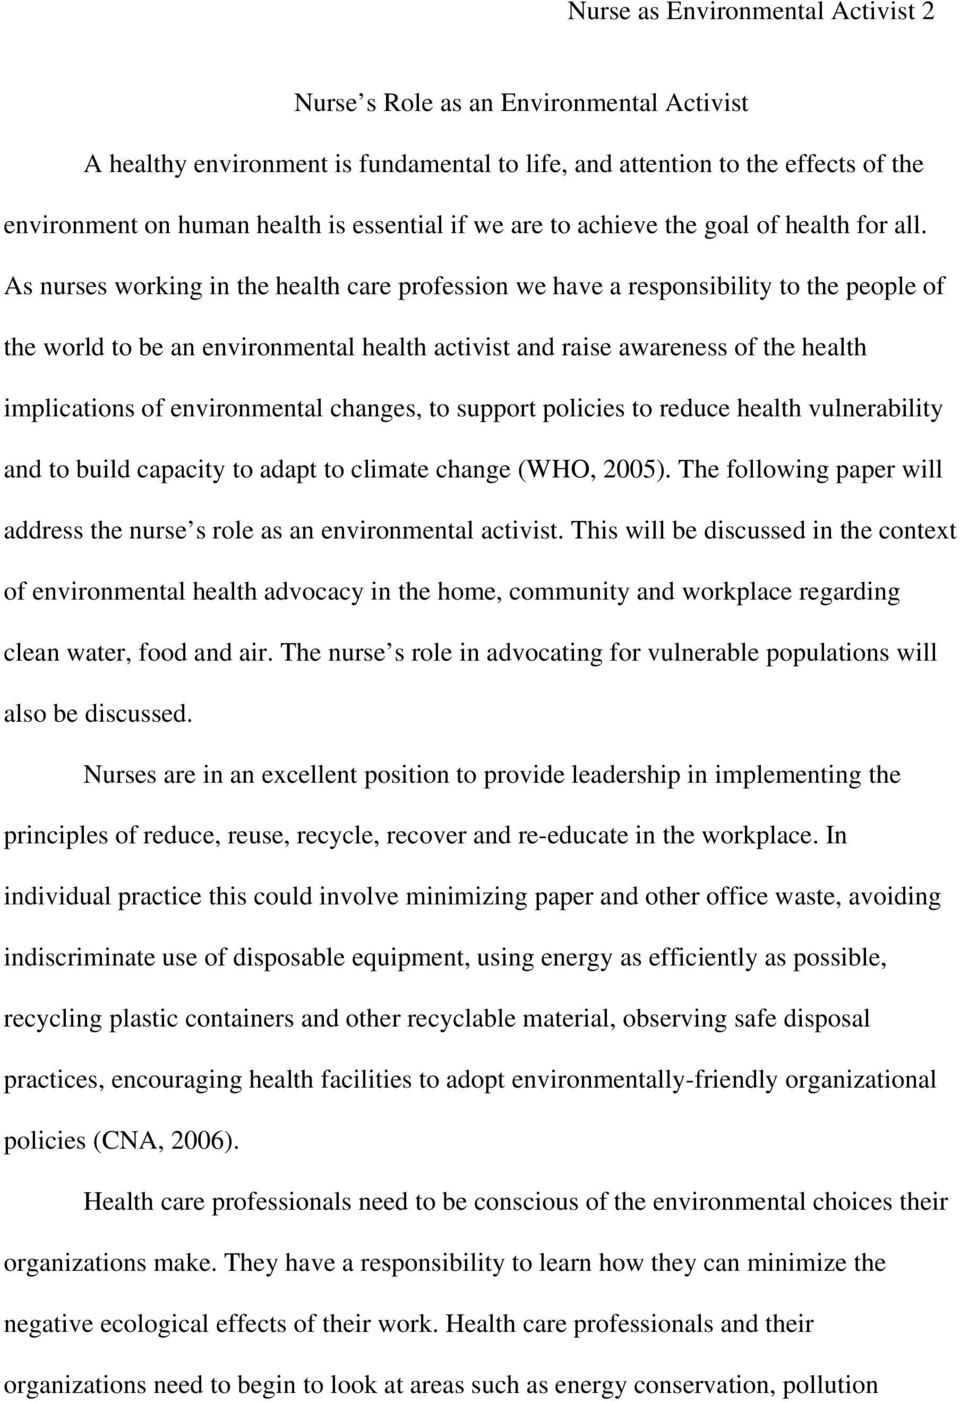 As nurses working in the health care profession we have a responsibility to the people of the world to be an environmental health activist and raise awareness of the health implications of